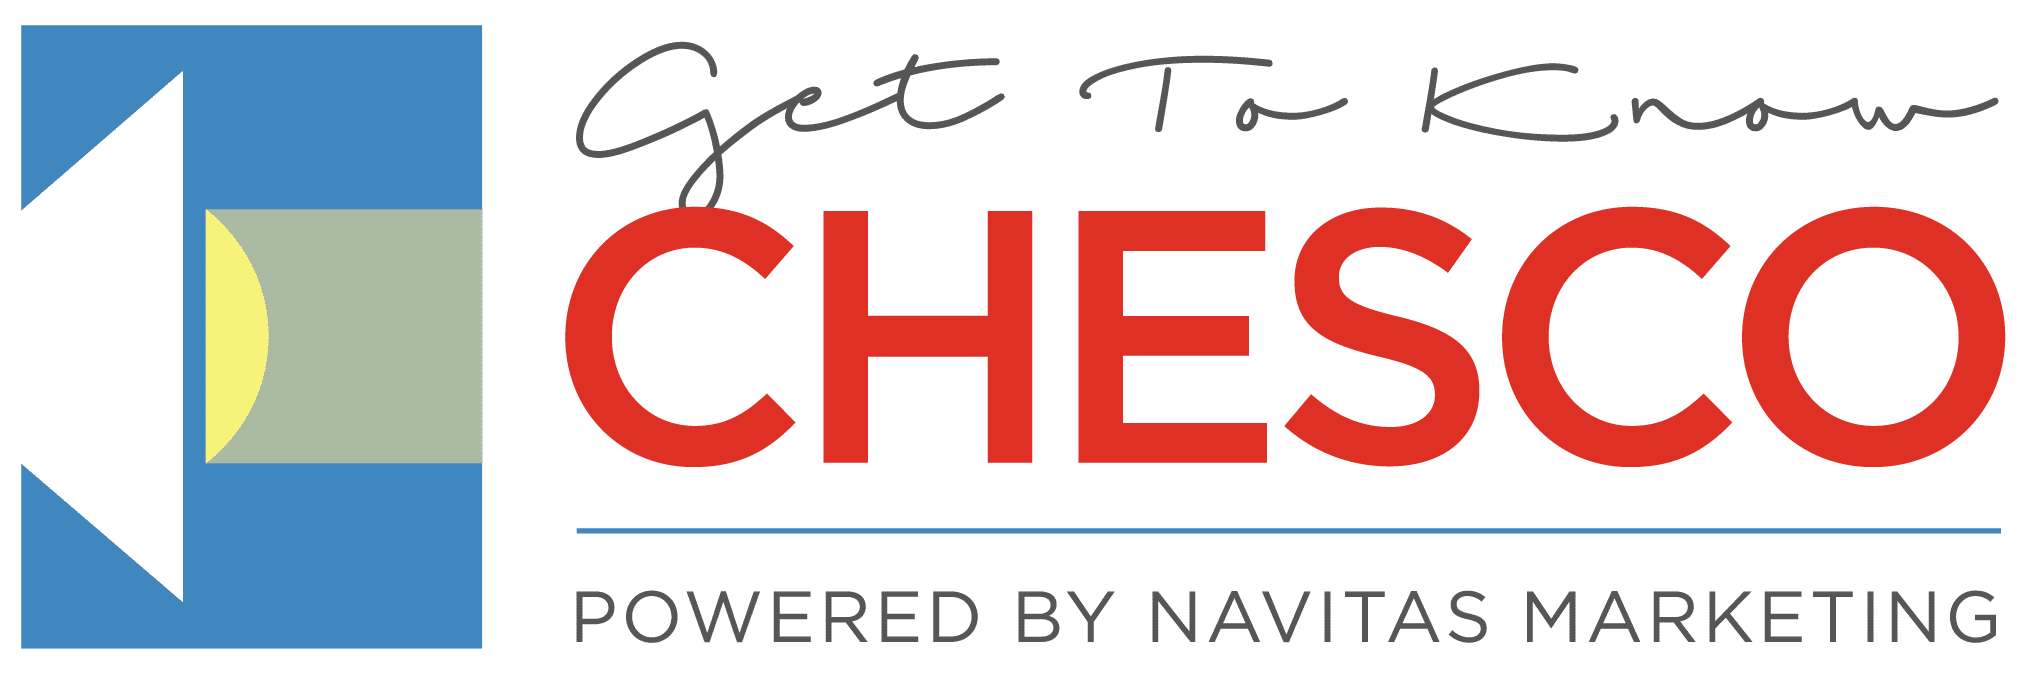 Get to Know Chesco